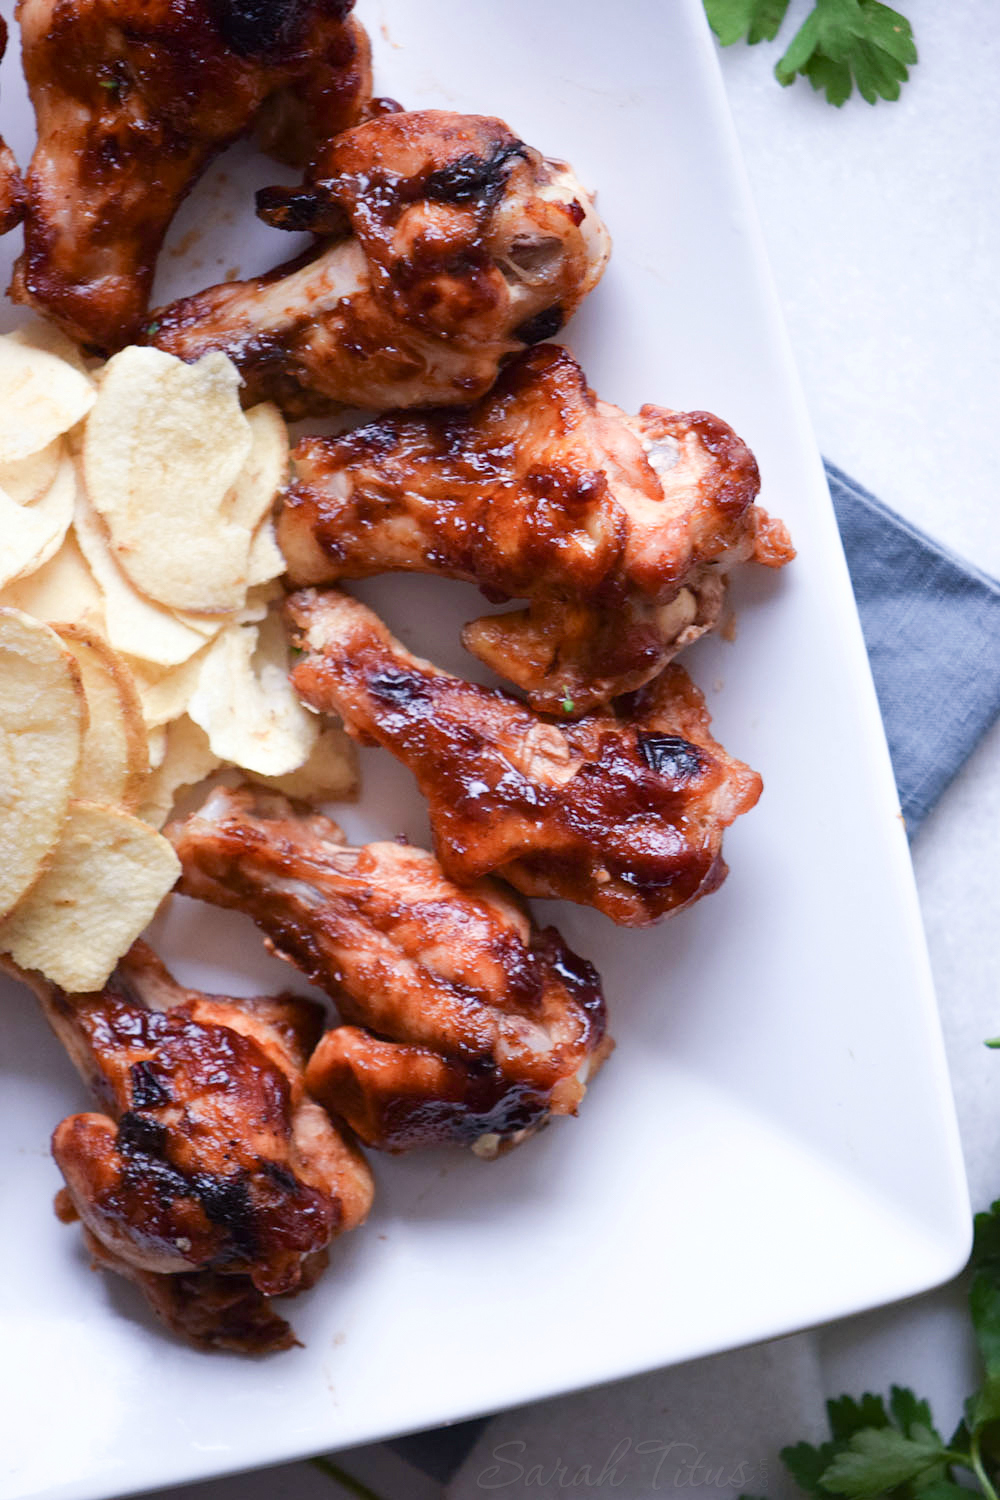 Fully cooked Sweet and Spicy Chicken Wings on a white plate with a side of potato chips all sitting on a blue cloth